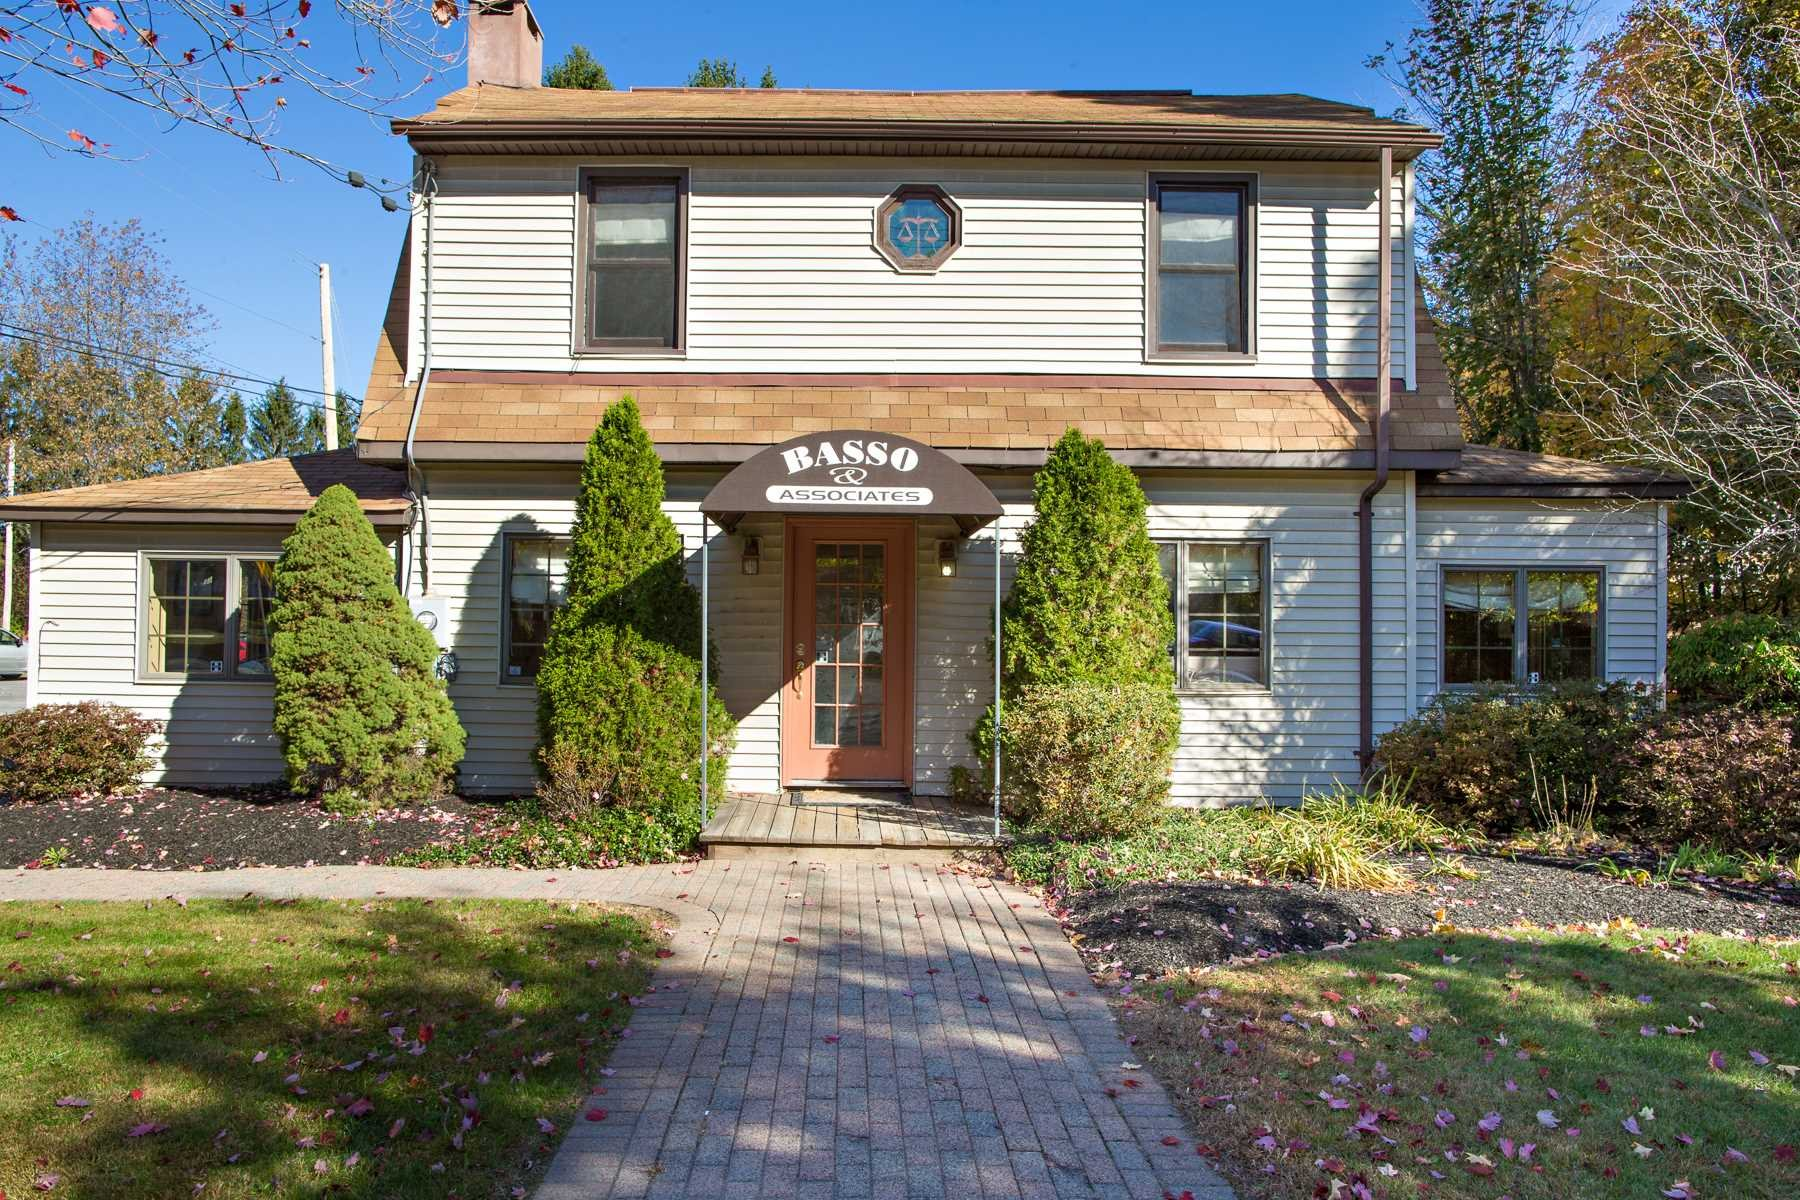 Commercial for Sale at 1171 ROUTE 55 1171 ROUTE 55 La Grange, New York 12540 United States